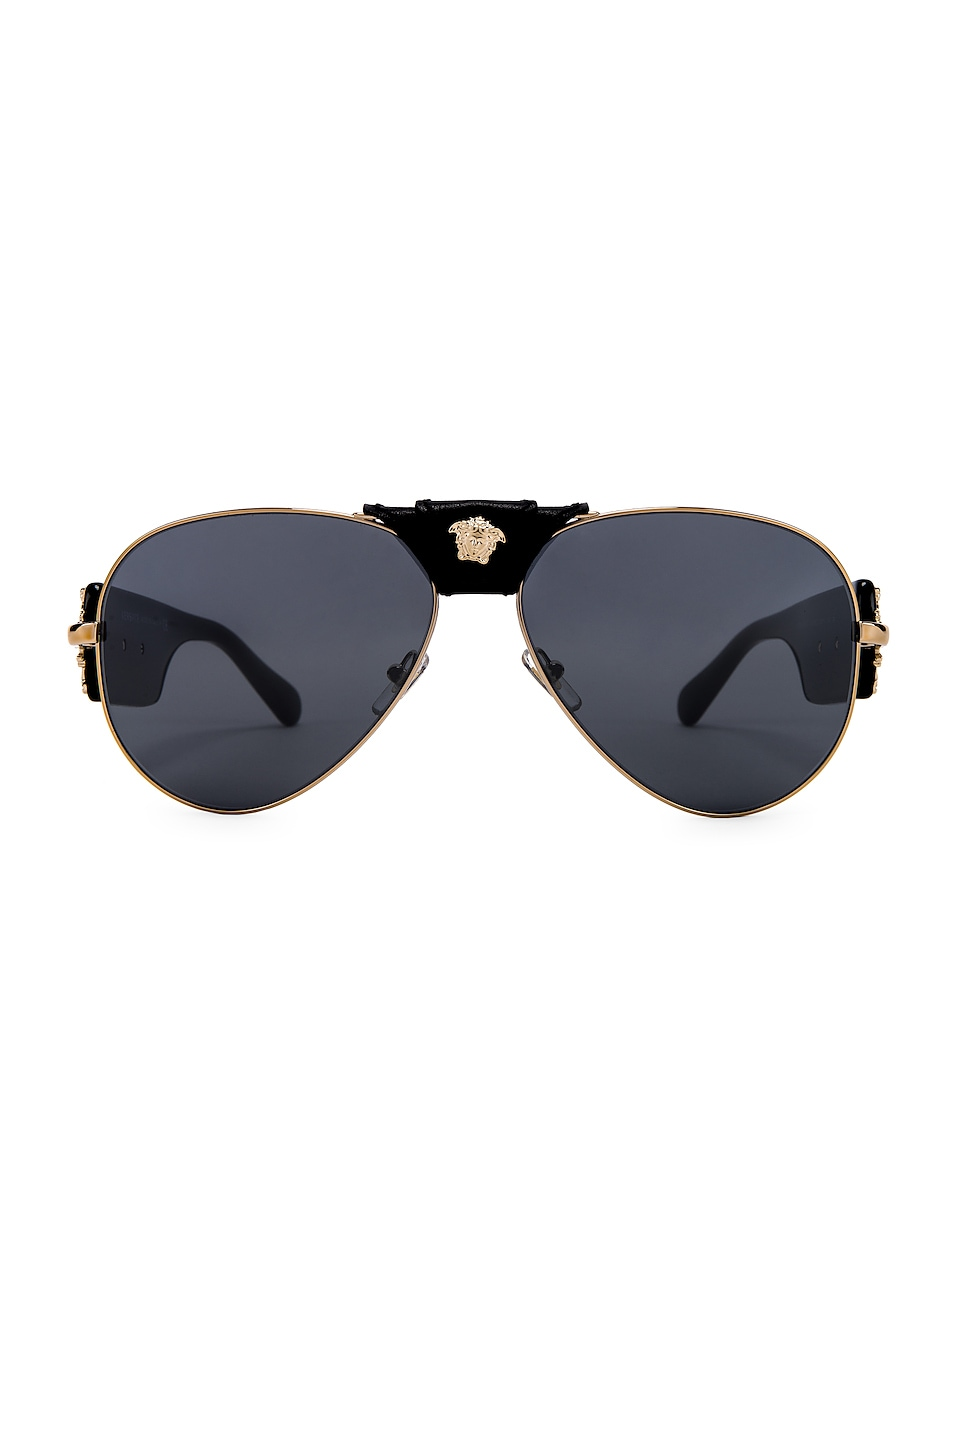 VERSACE Barocco Aviator in Black & Grey Mirror